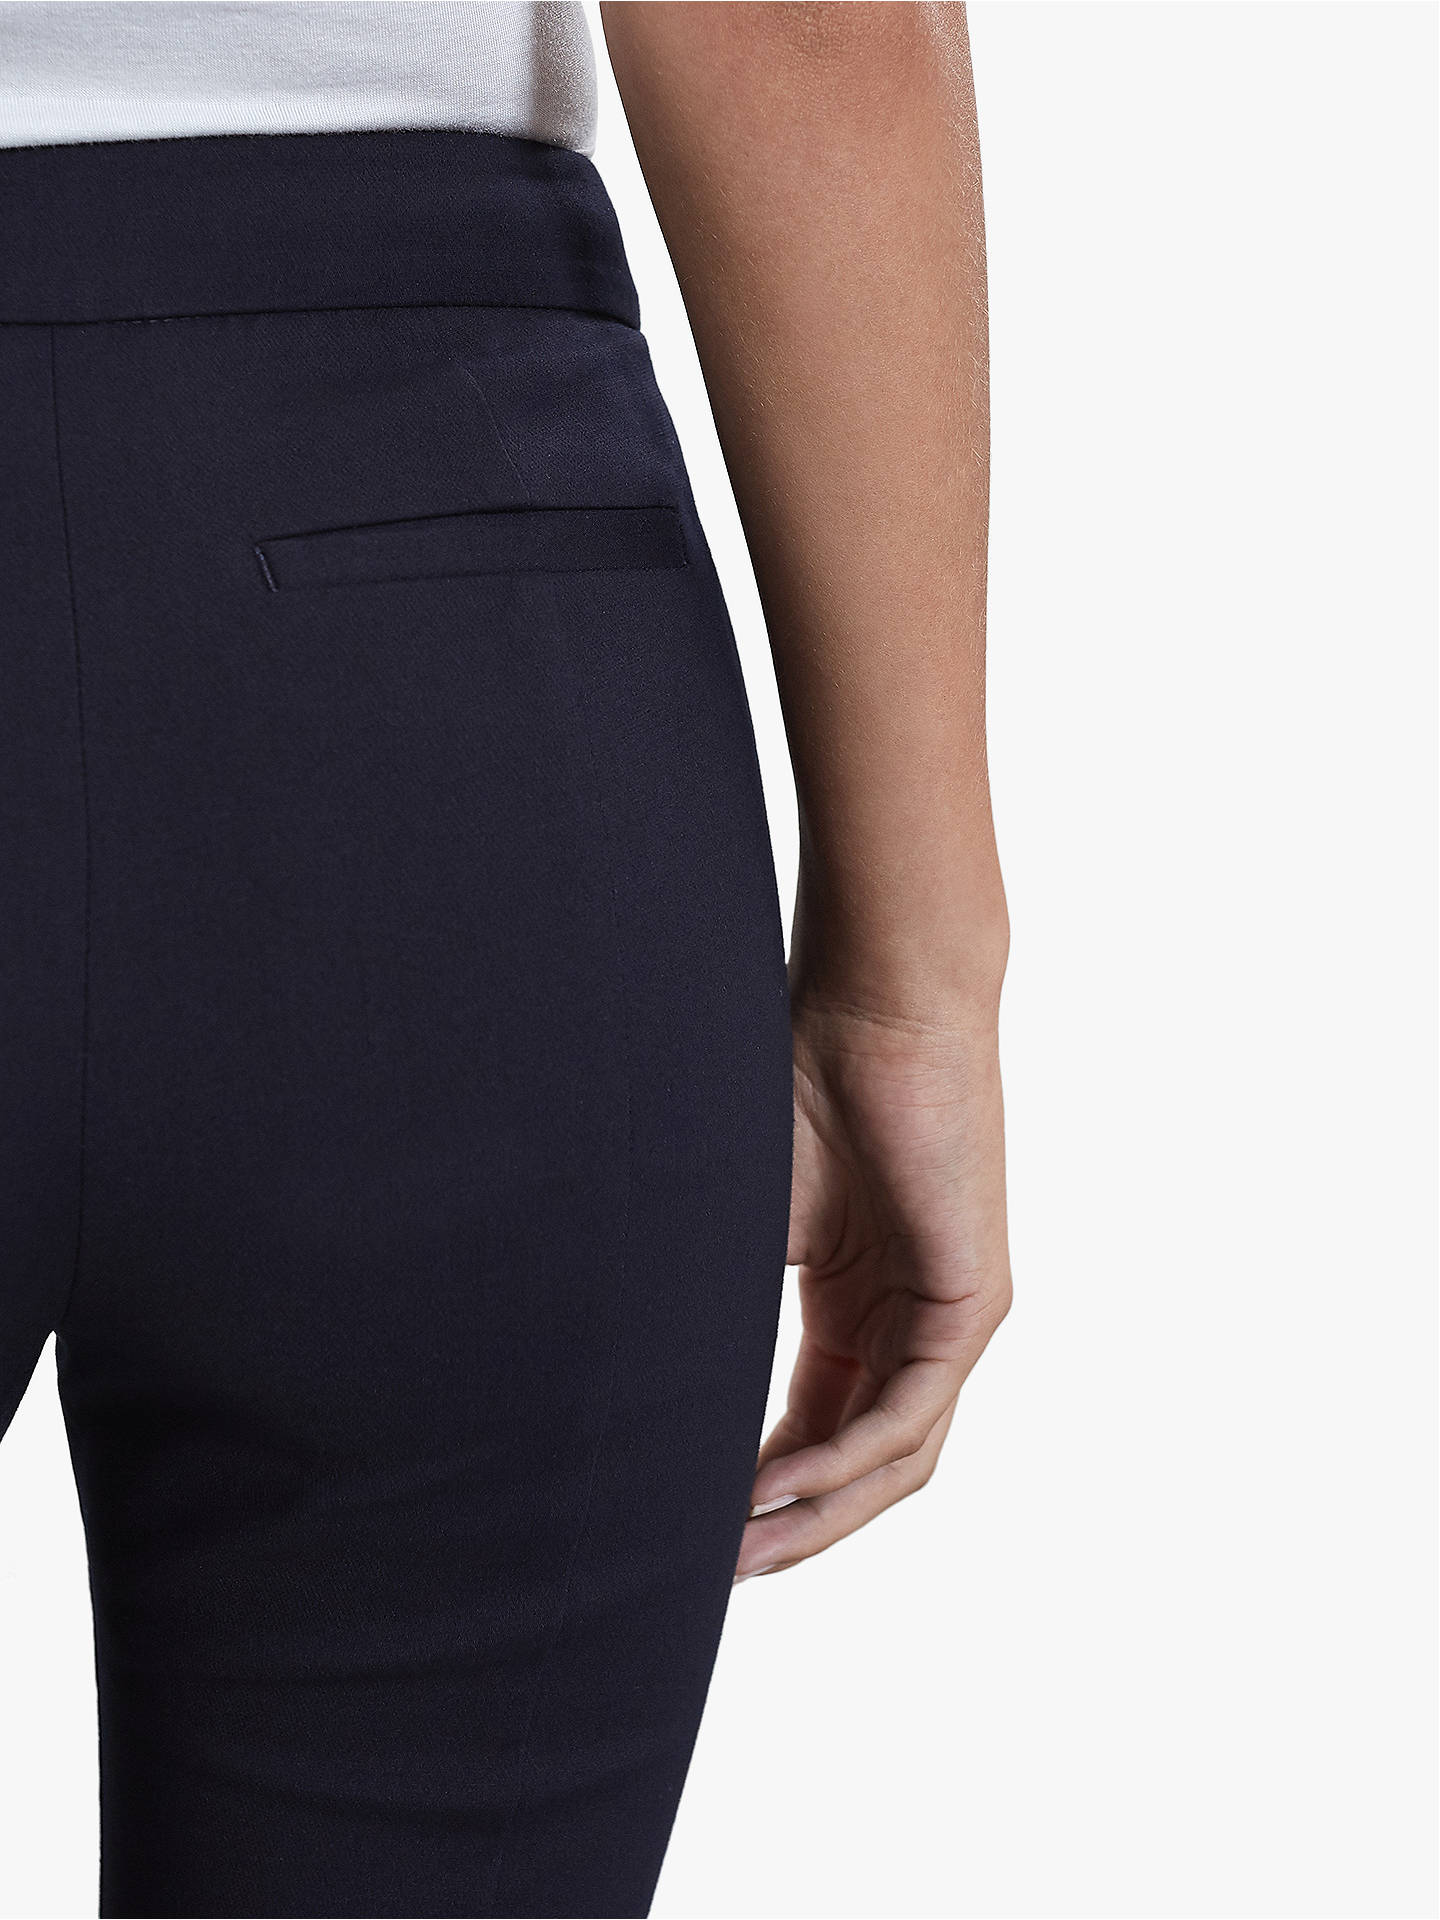 BuyReiss Arla Seam Detail Trousers, Navy, 6 Online at johnlewis.com